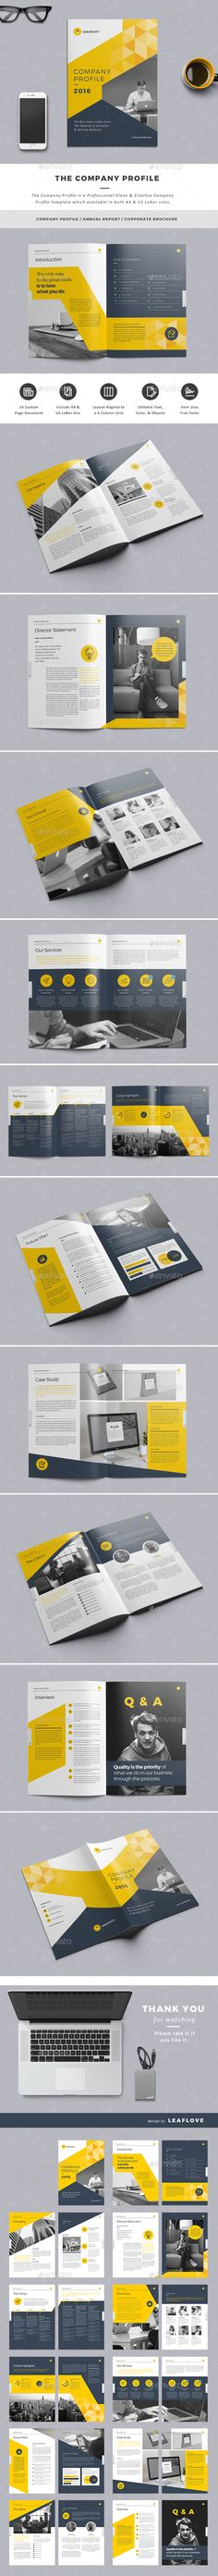 "Check out this @Behance project: ""The Company Profile"" https://www.behance.net/gallery/33242449/The-Company-Profile"